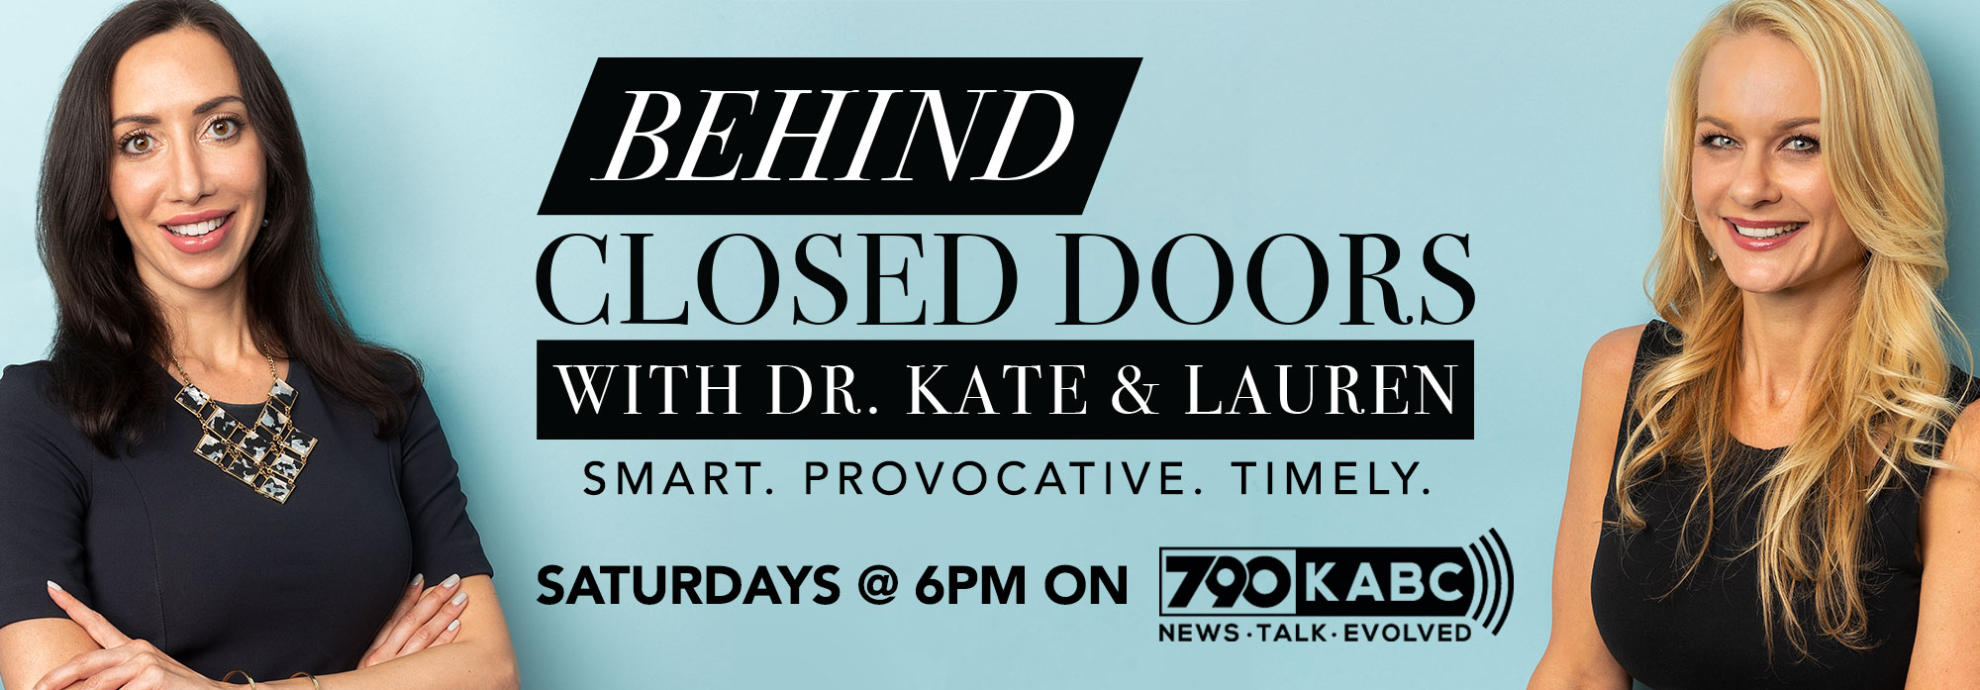 Behind Closed Doors with Dr. Kate & Lauren. Smart. Provocative. Timely. Saturdays at 6PM on Talk Radio 790 KABC.